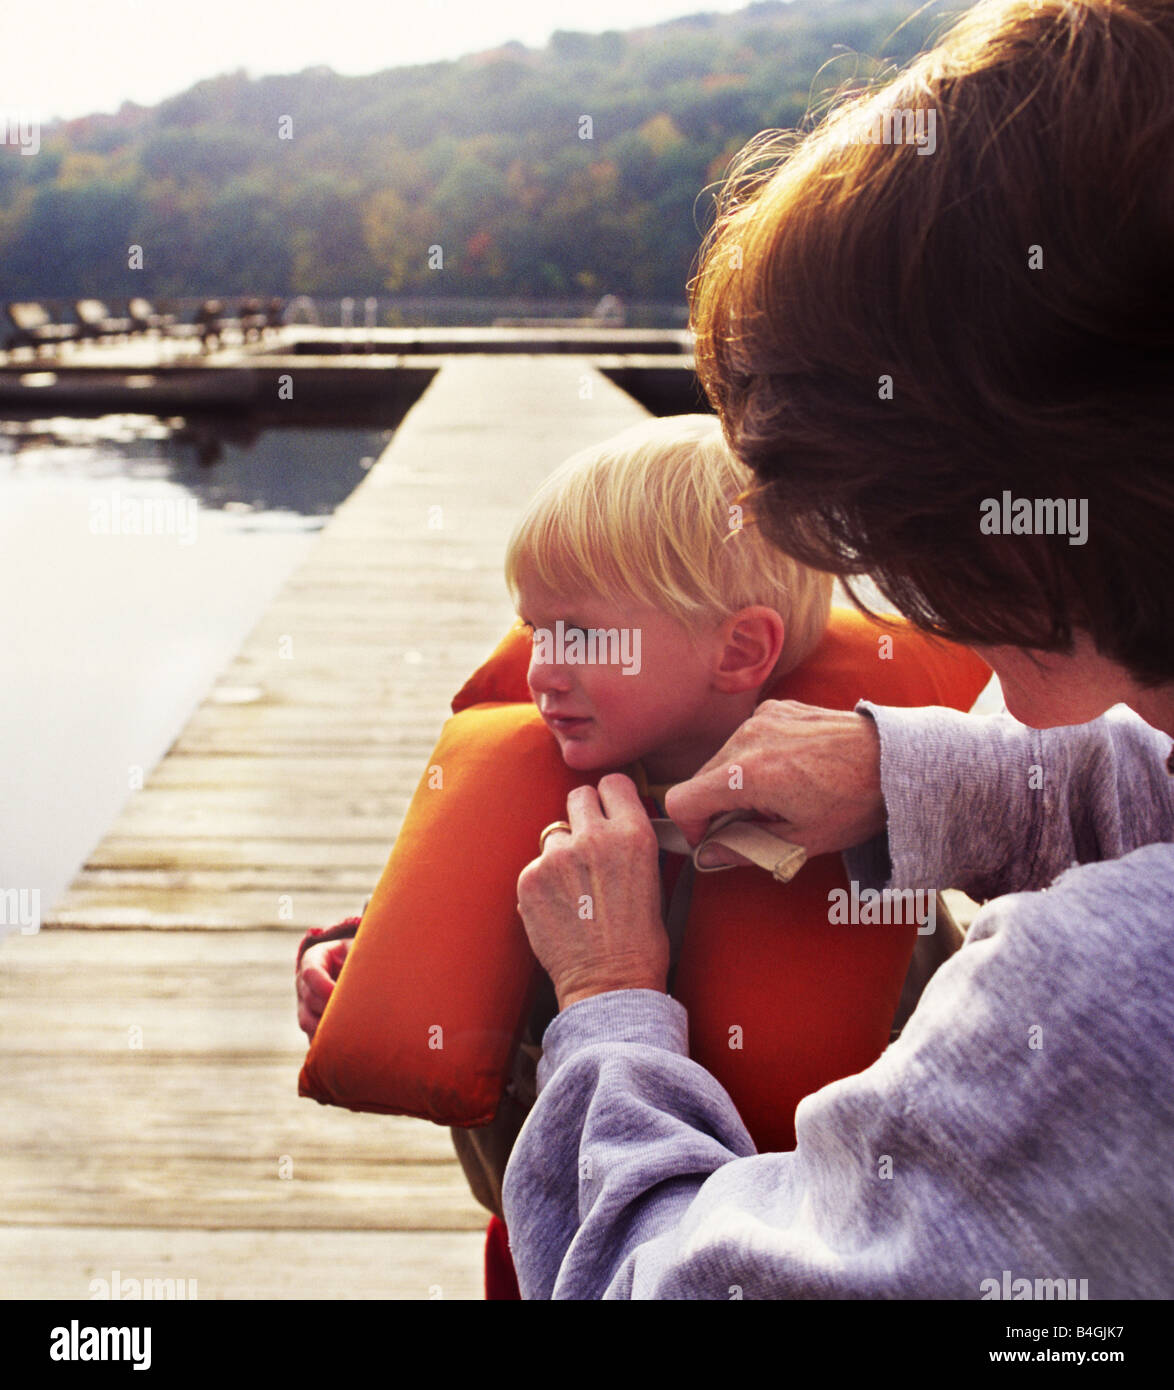 mother securing life vest on child - Stock Image